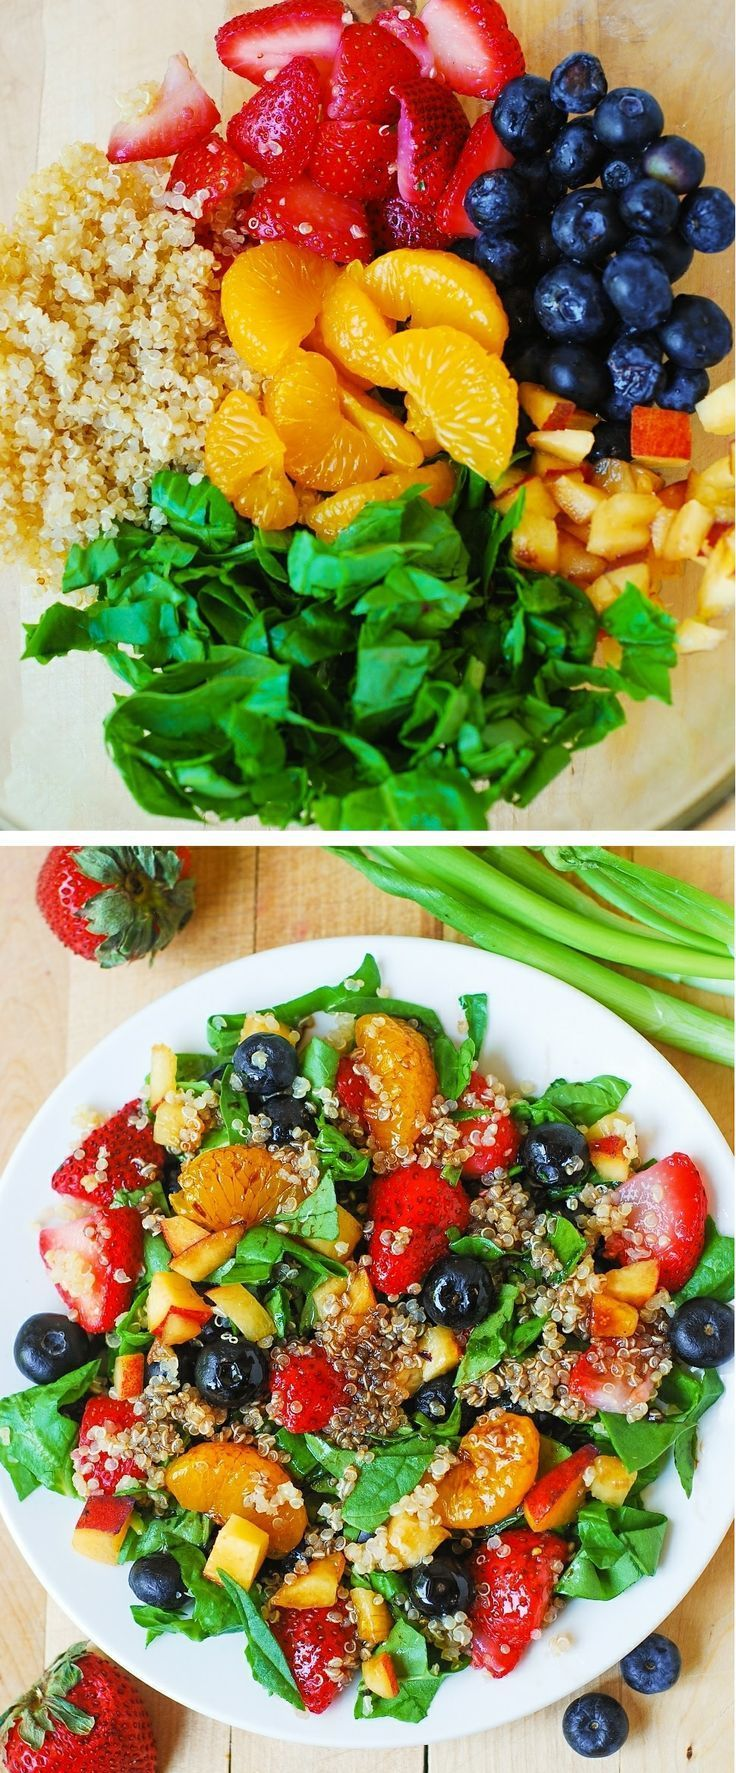 Quinoa Salad with Spinach, Strawberries, Blueberries and Peaches